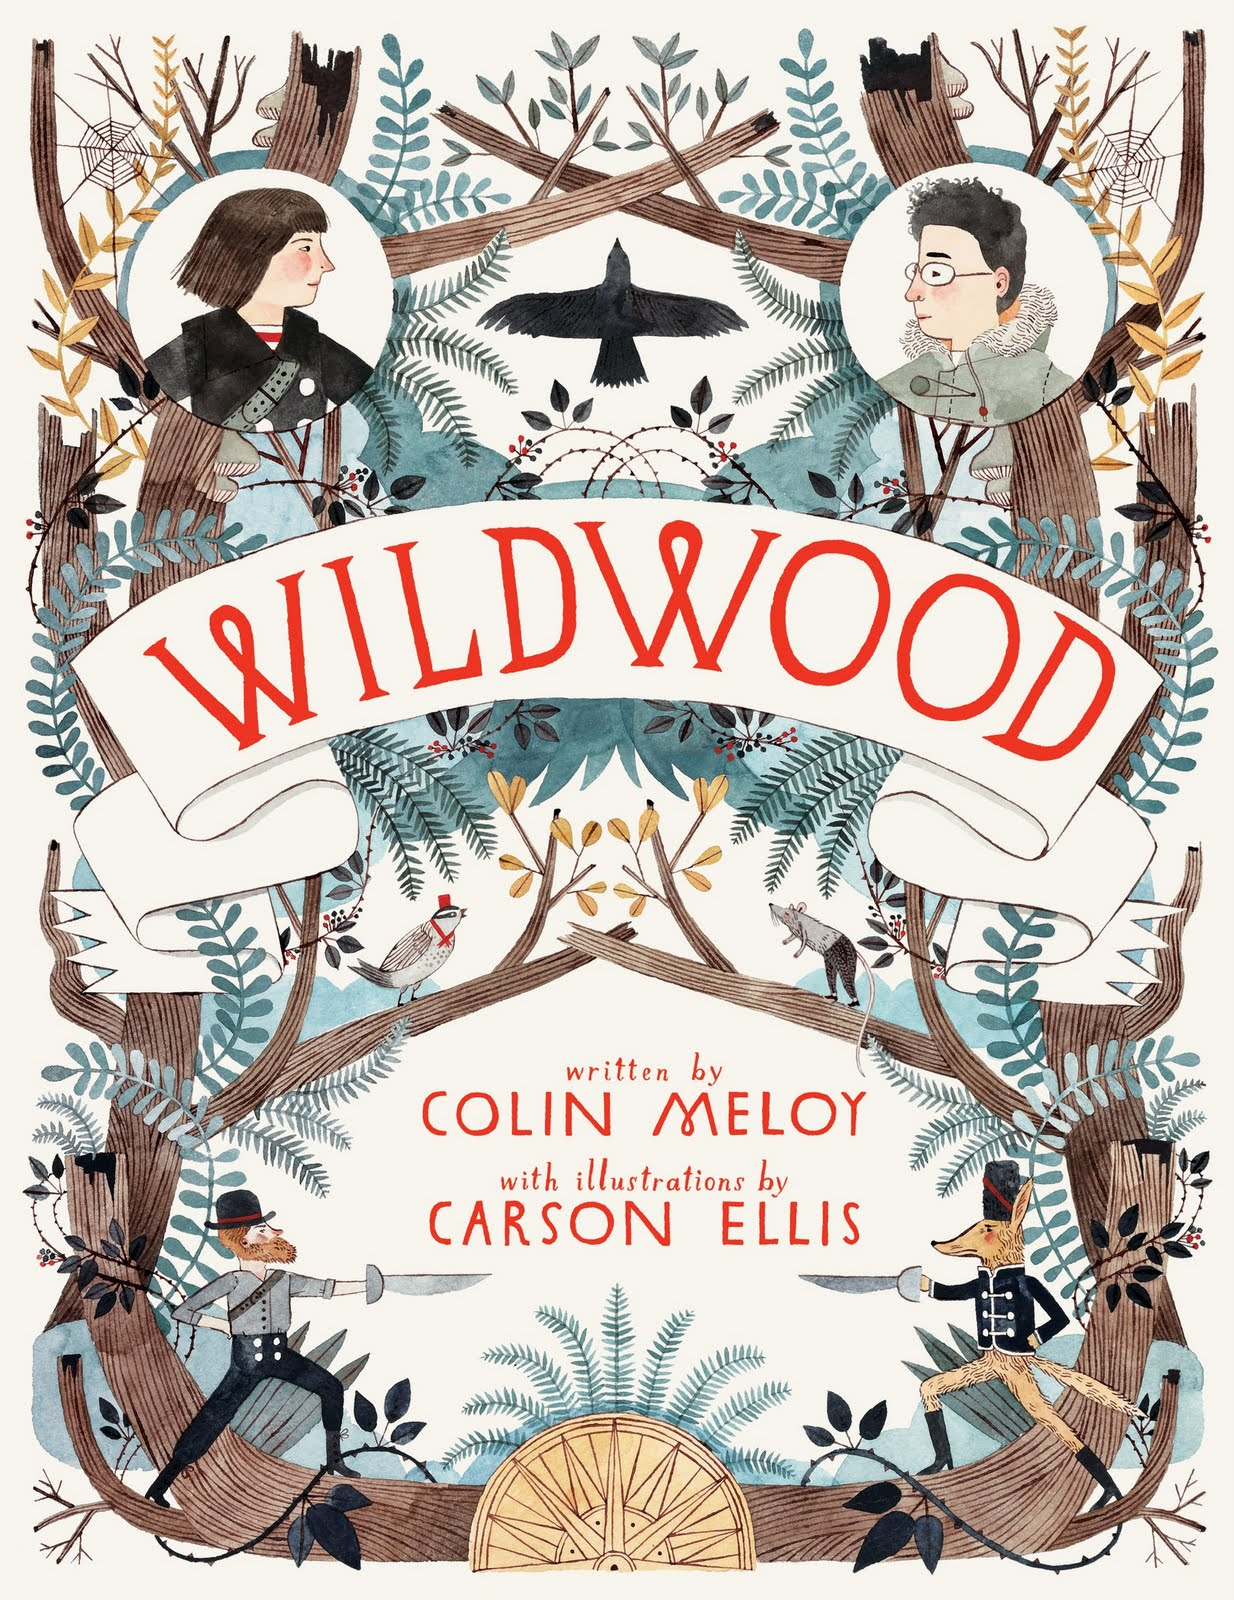 Wildwood Chronicles 1 Written By Colin Meloy With Illustrations Carson Ellis